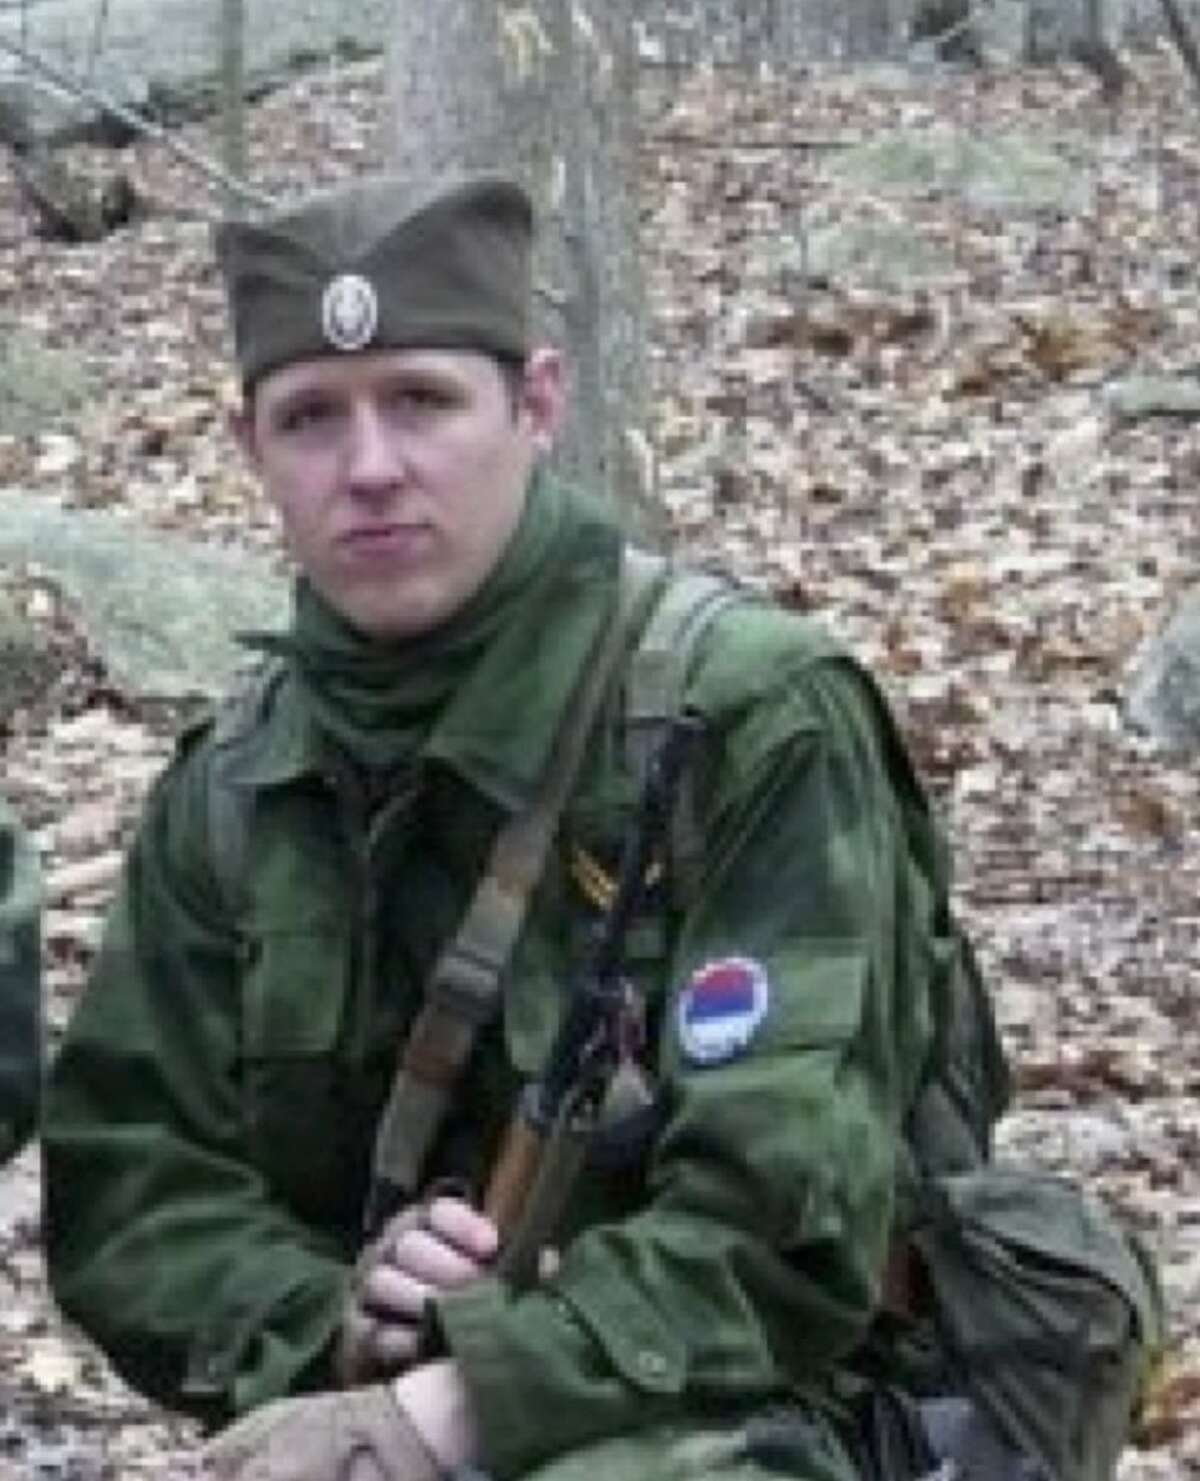 FILE - This undated file photo provided by the Pennsylvania State Police shows Eric Frein, who has eluded police, but is charged with killing one Pennsylvania State Trooper and seriously wounding another in a late night ambush. Authorities said Thursday, Oct. 30, 2014, that they have captured Frein.